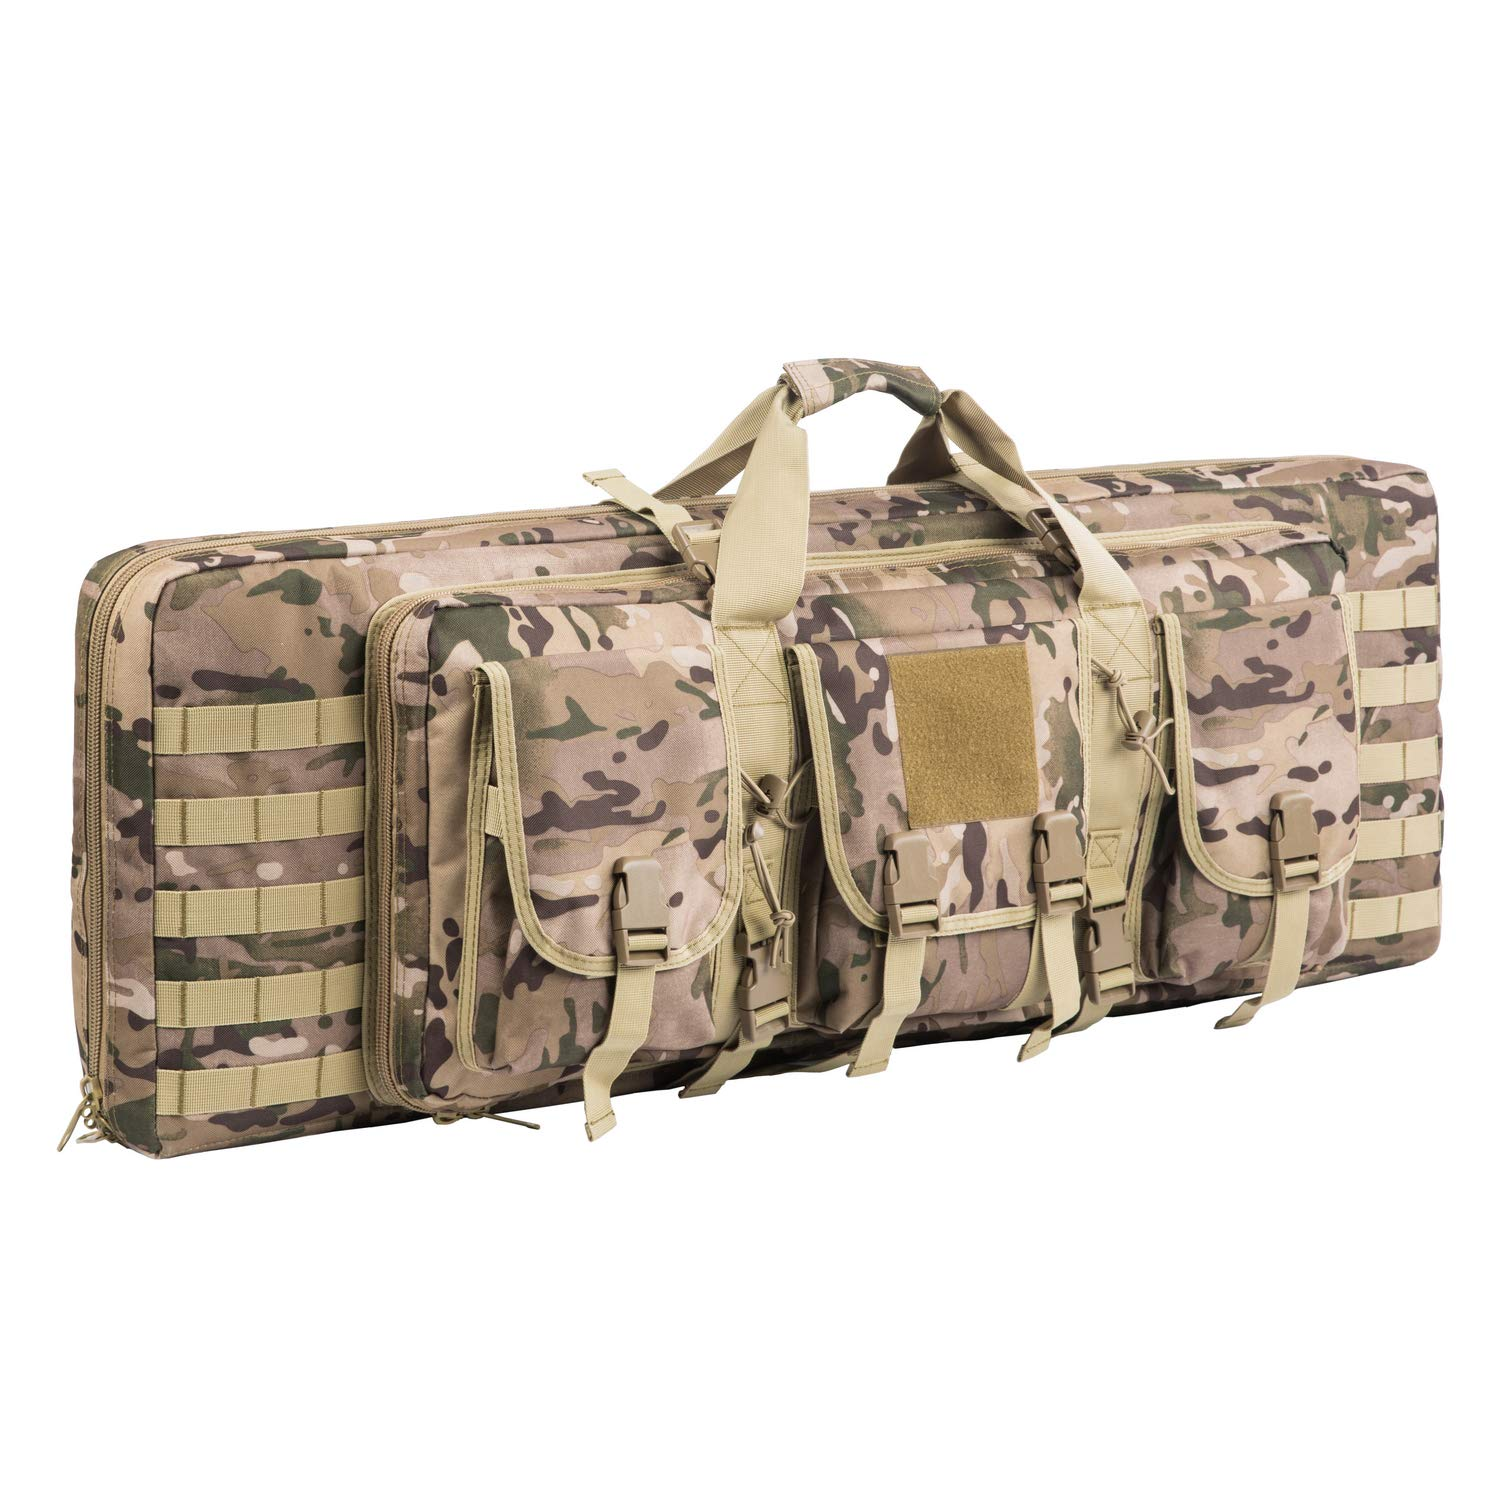 AK47/AR16 Tactical Rifle Case Double Carbine Bag Outdoor Molle Deluxe Double Rifle Gun Bag Padded Long Gun Case & Rifle Storage Backpack(2 Sizes and 6 Colors to chooese from) (Multicam, 42inch) by XWLSPORT